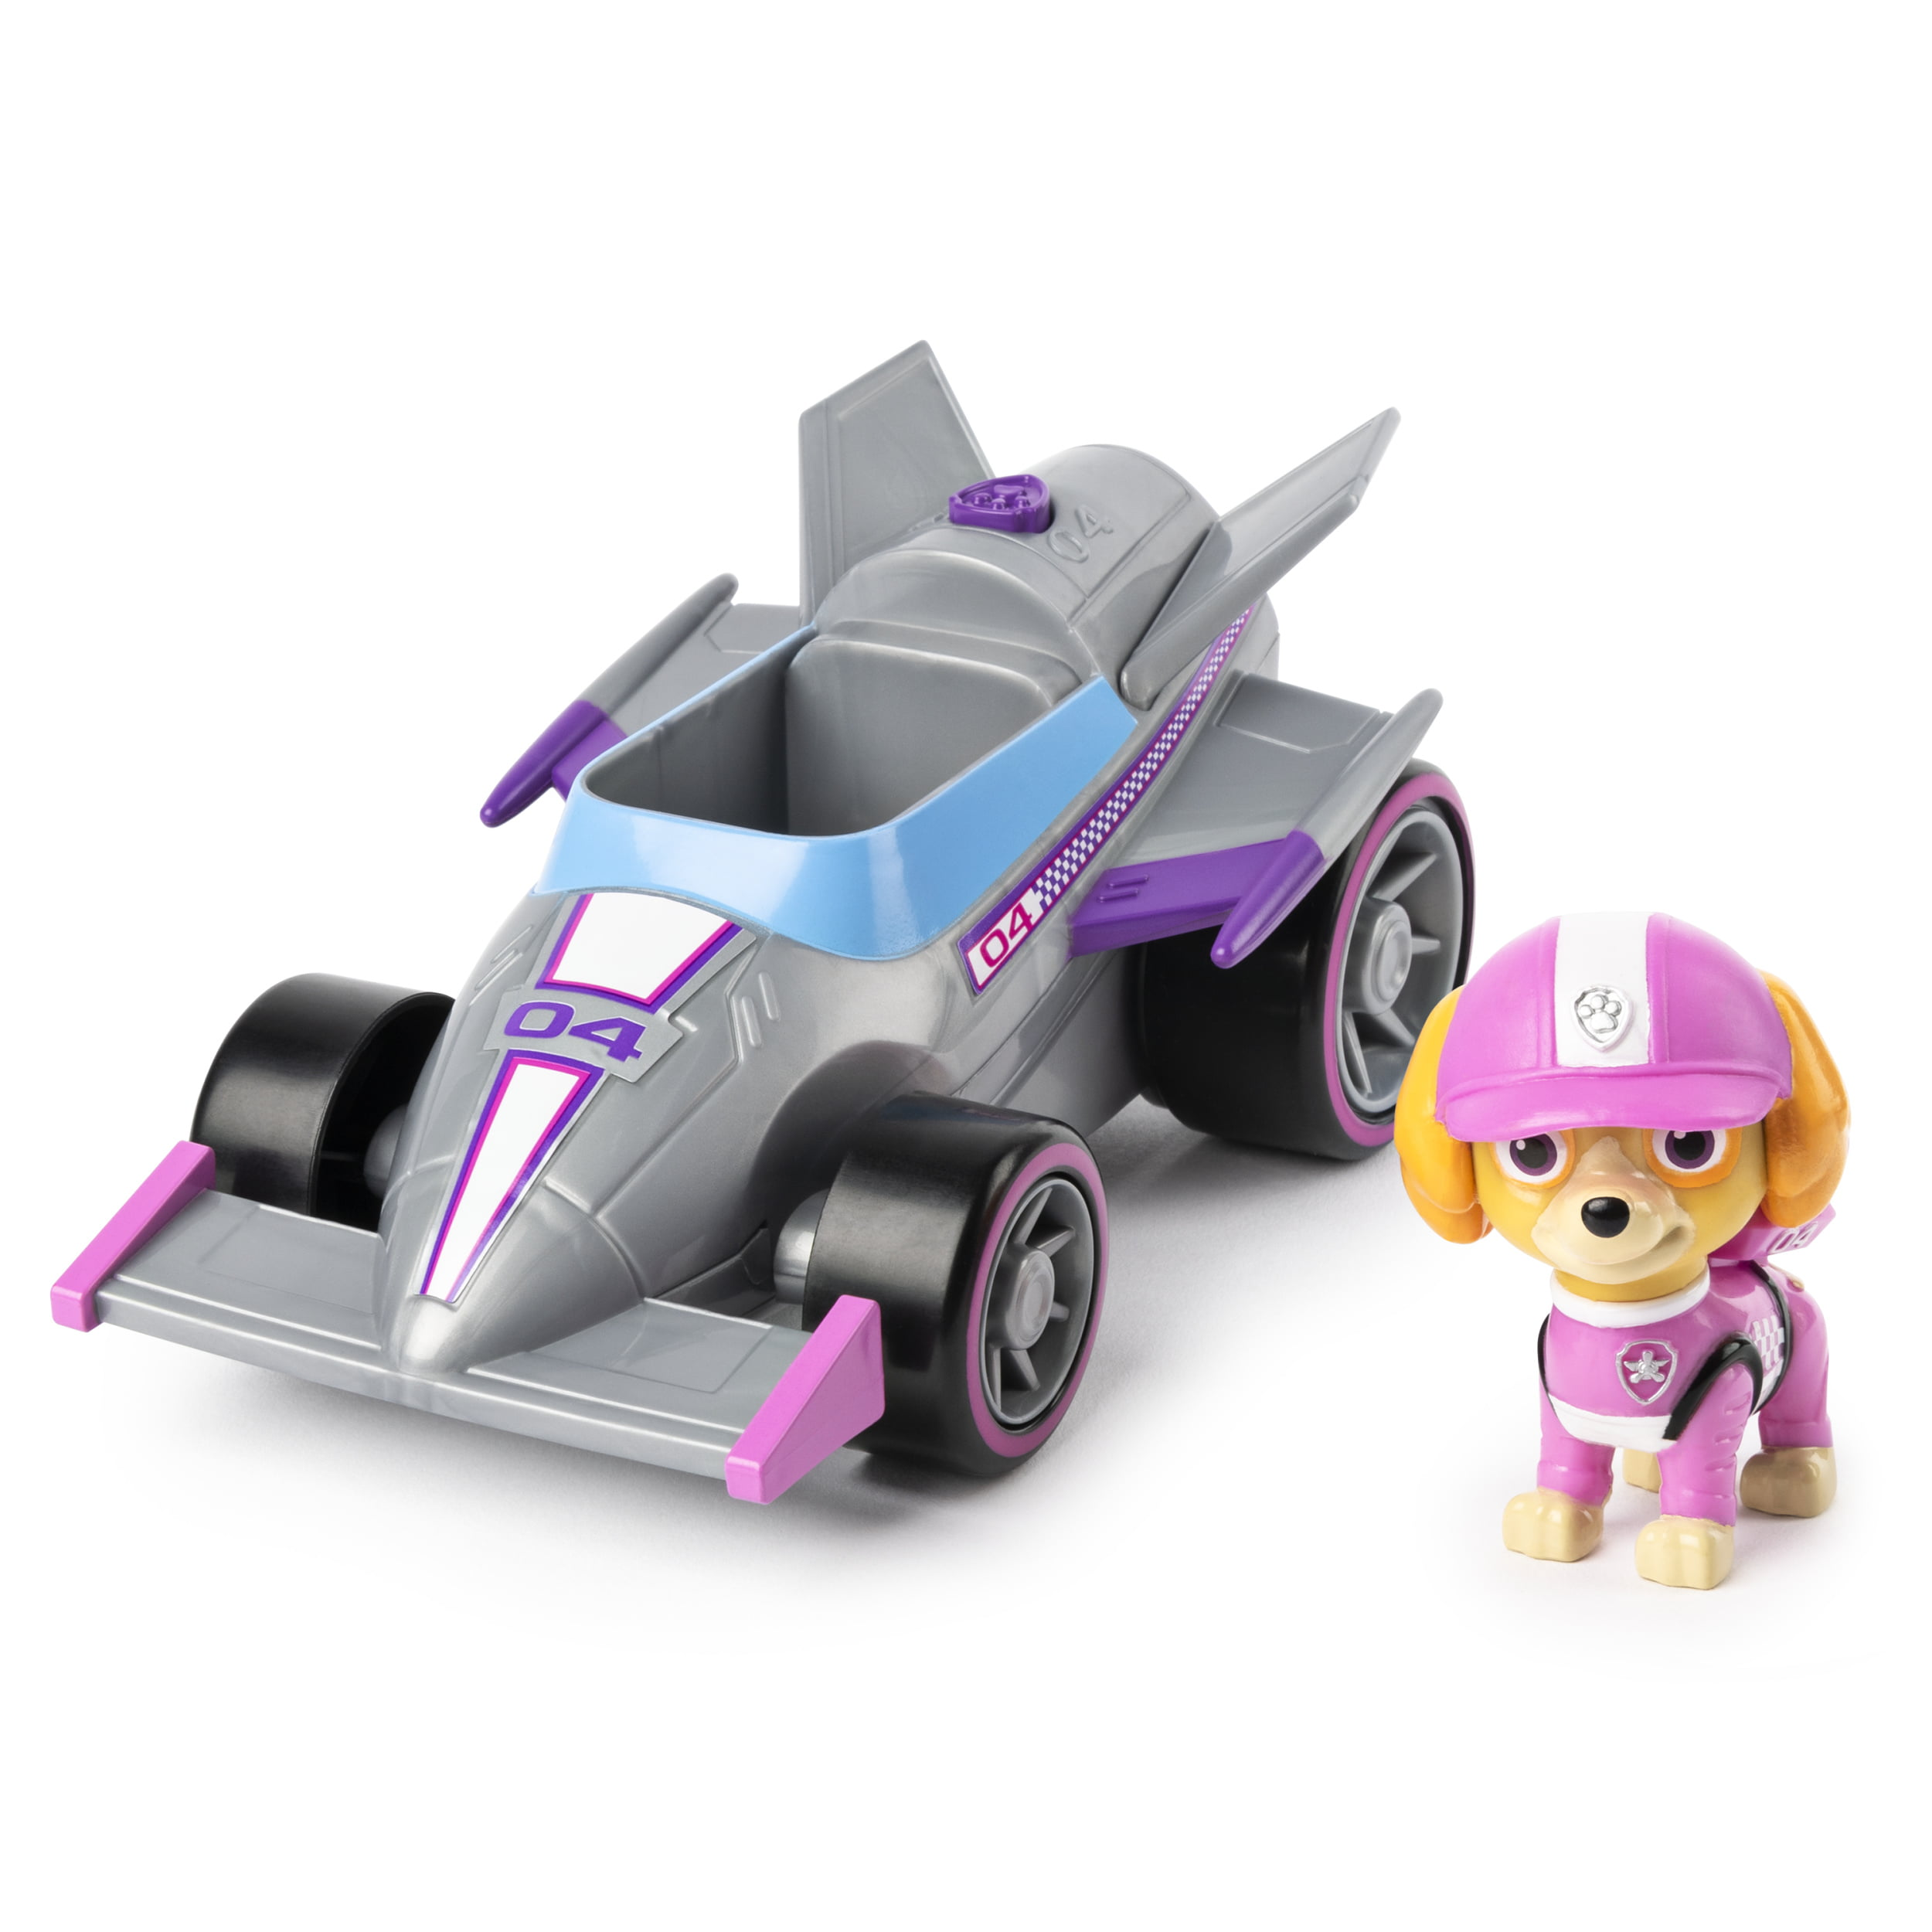 PAW Patrol, Ready, Race, Rescue Skye's Race & Go Deluxe Vehicle with Sounds, for Kids Aged 3 and up,